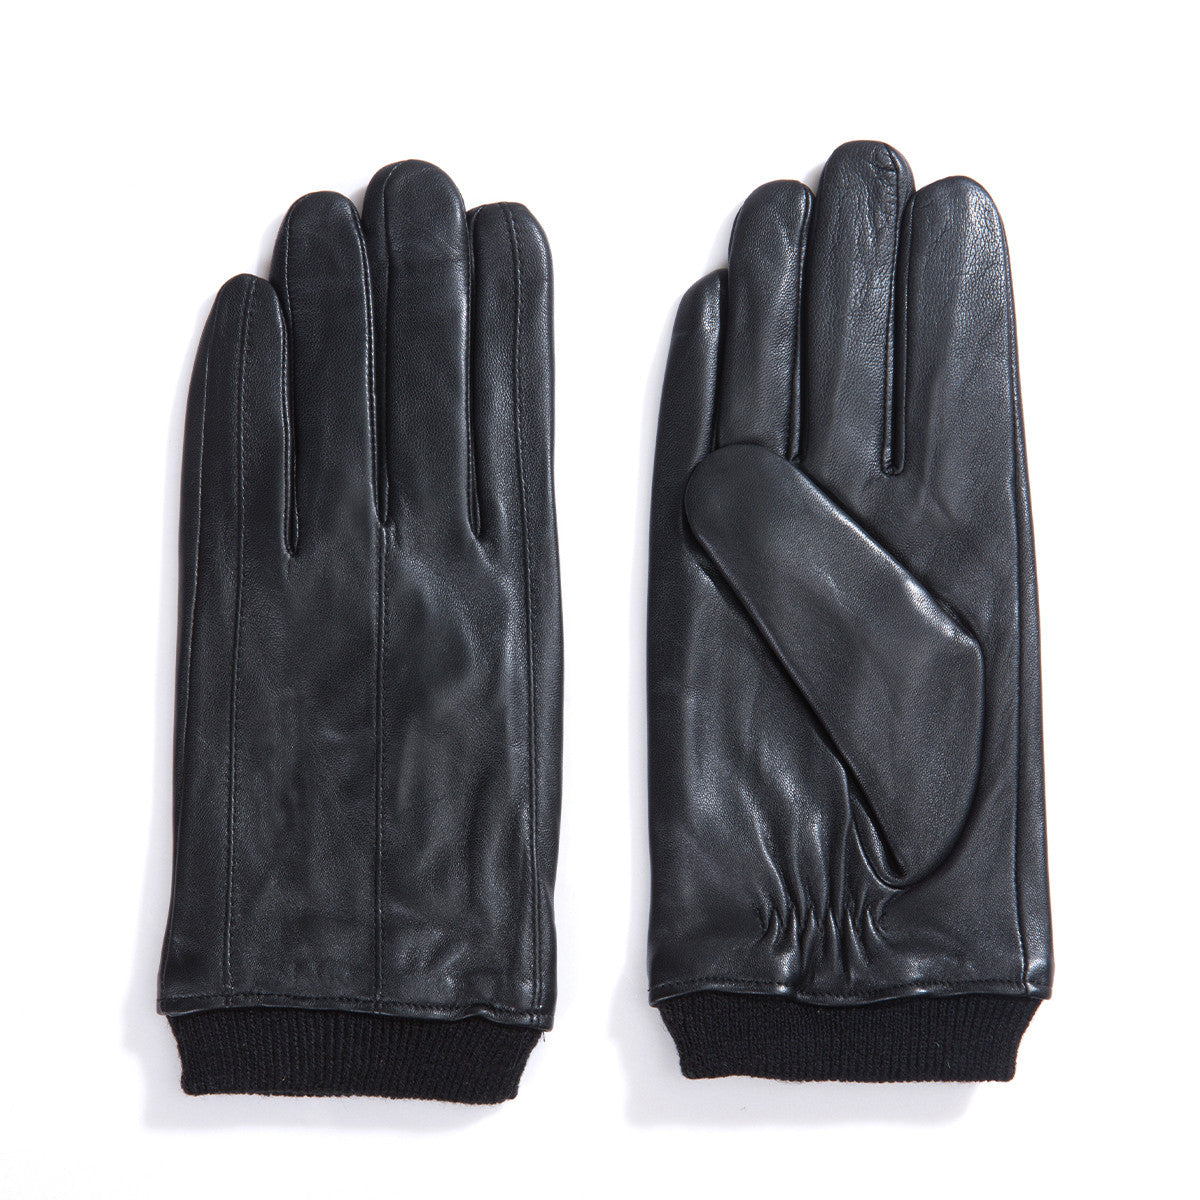 Black gloves online -  Matsu X Amazon Men Lambskin Leather Winter Gloves M2002